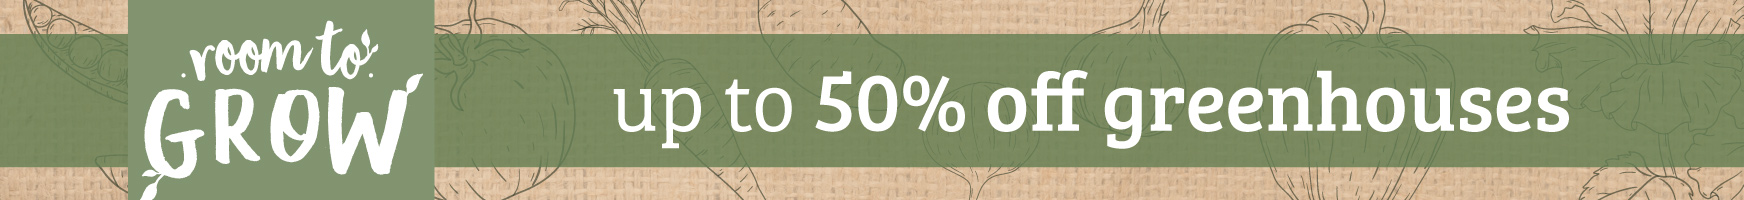 Up to 50% off greenhouses